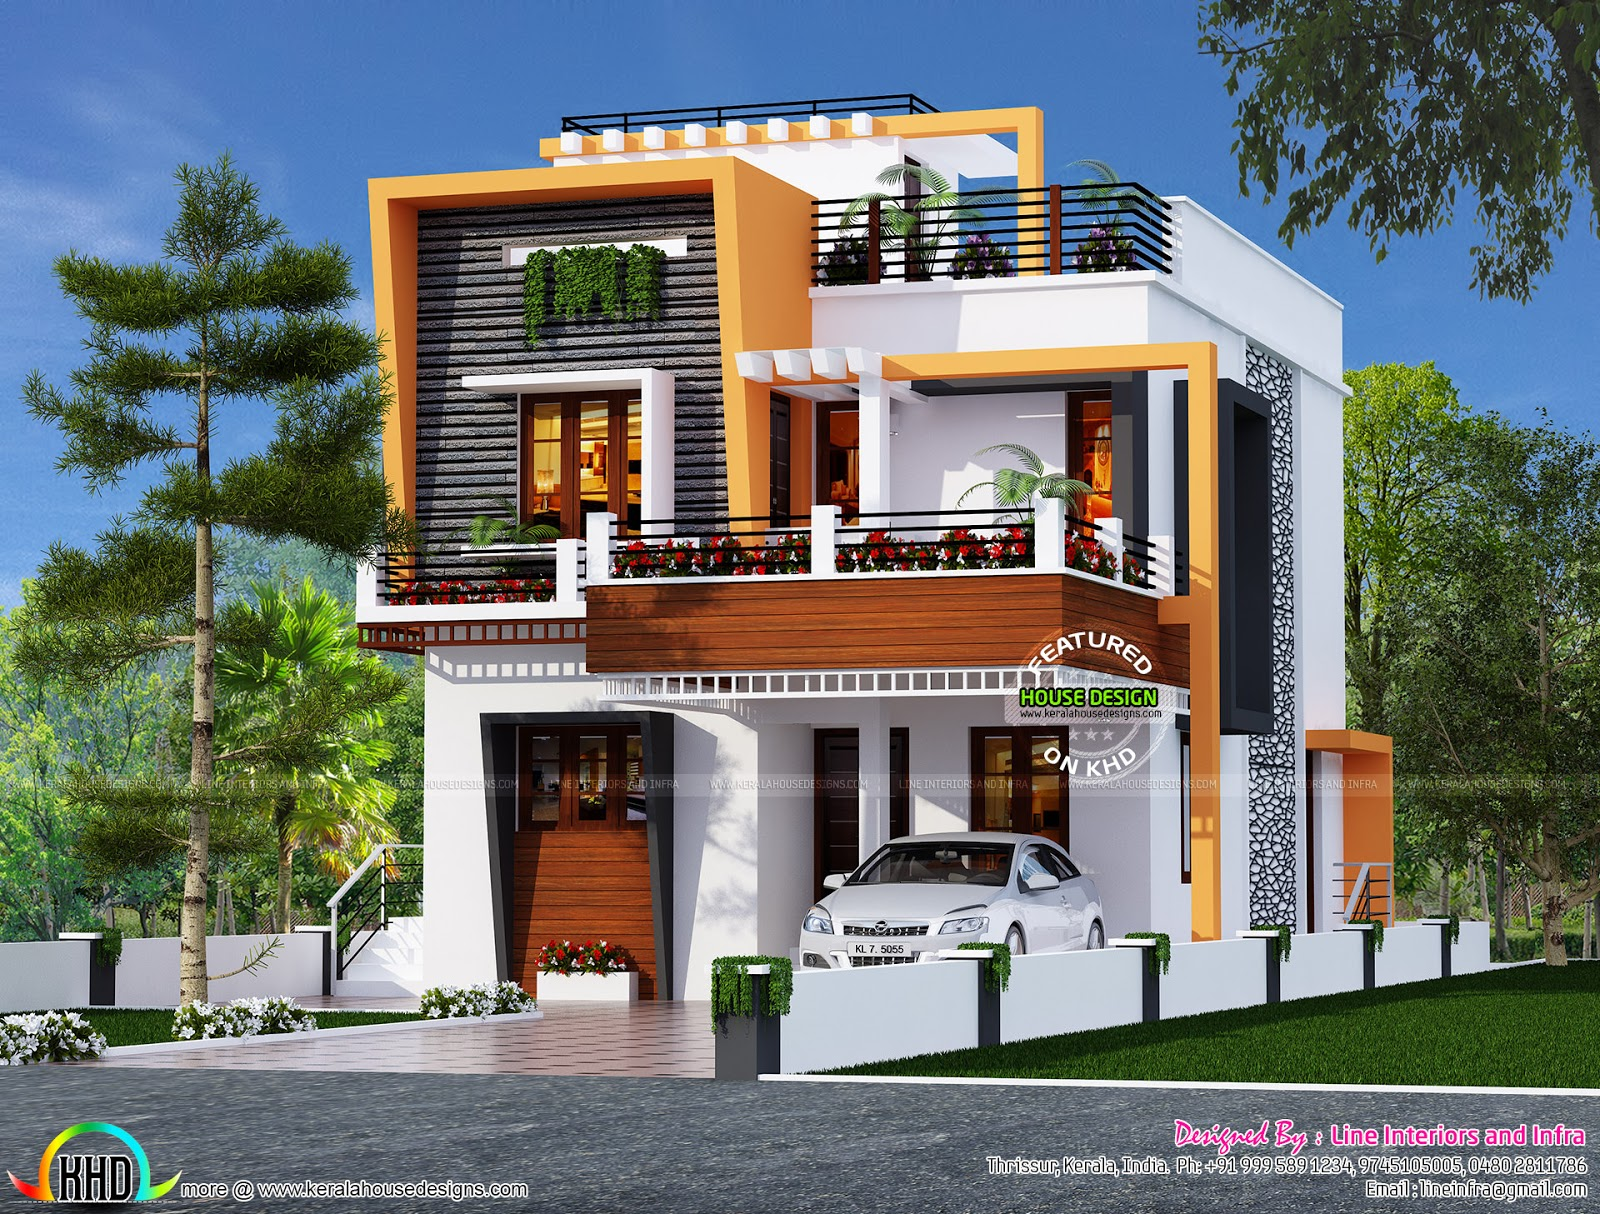 3 bedroom cute contemporary home - Kerala home design and ...